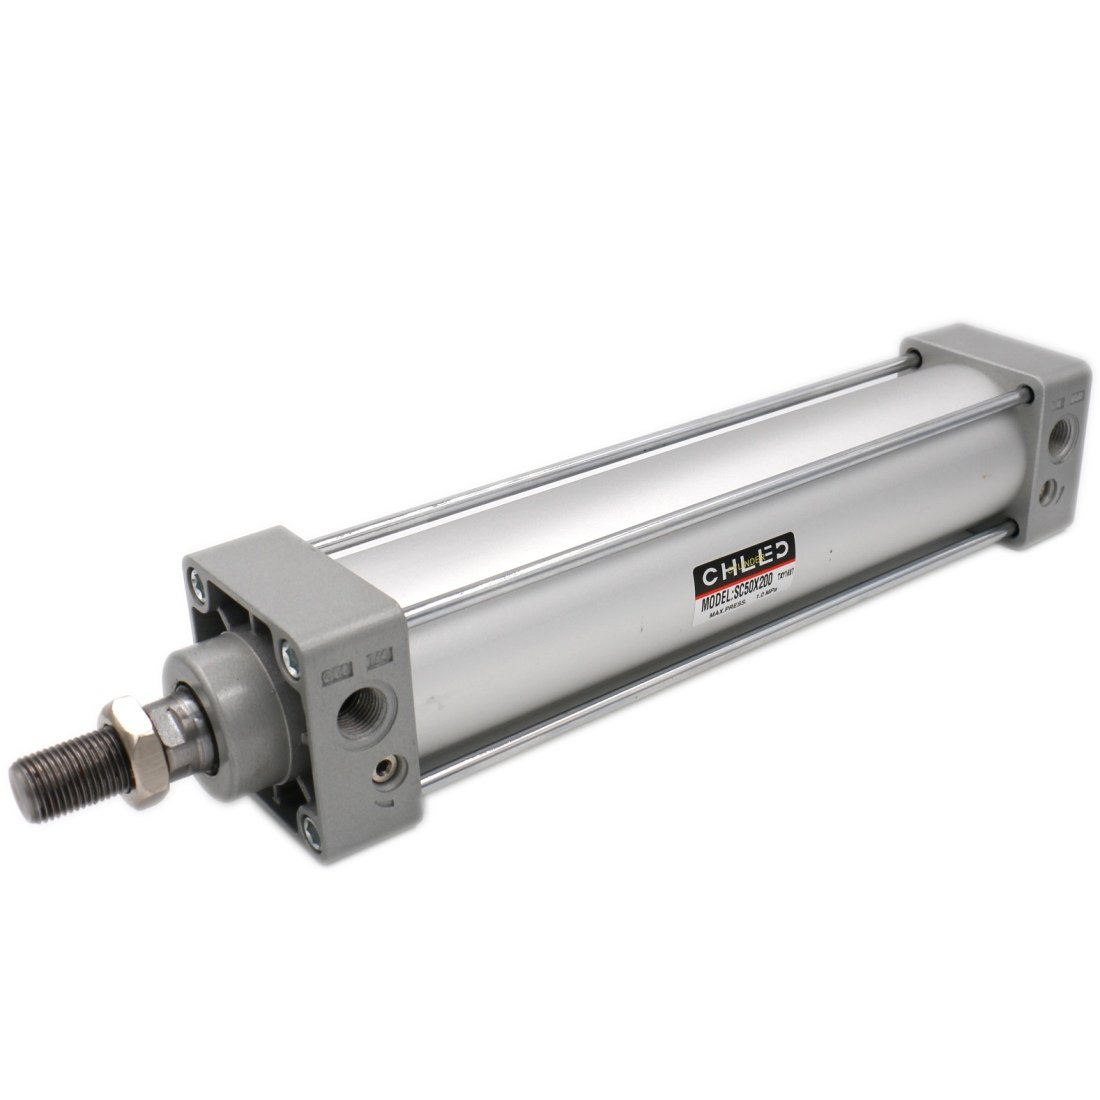 Baomain Pneumatic Air Cylinder SC 50 x 250 PT 1/4, Bore: 50mm, Stroke: 250mm, Screwed Piston Rod Dual Action 1 Mpa